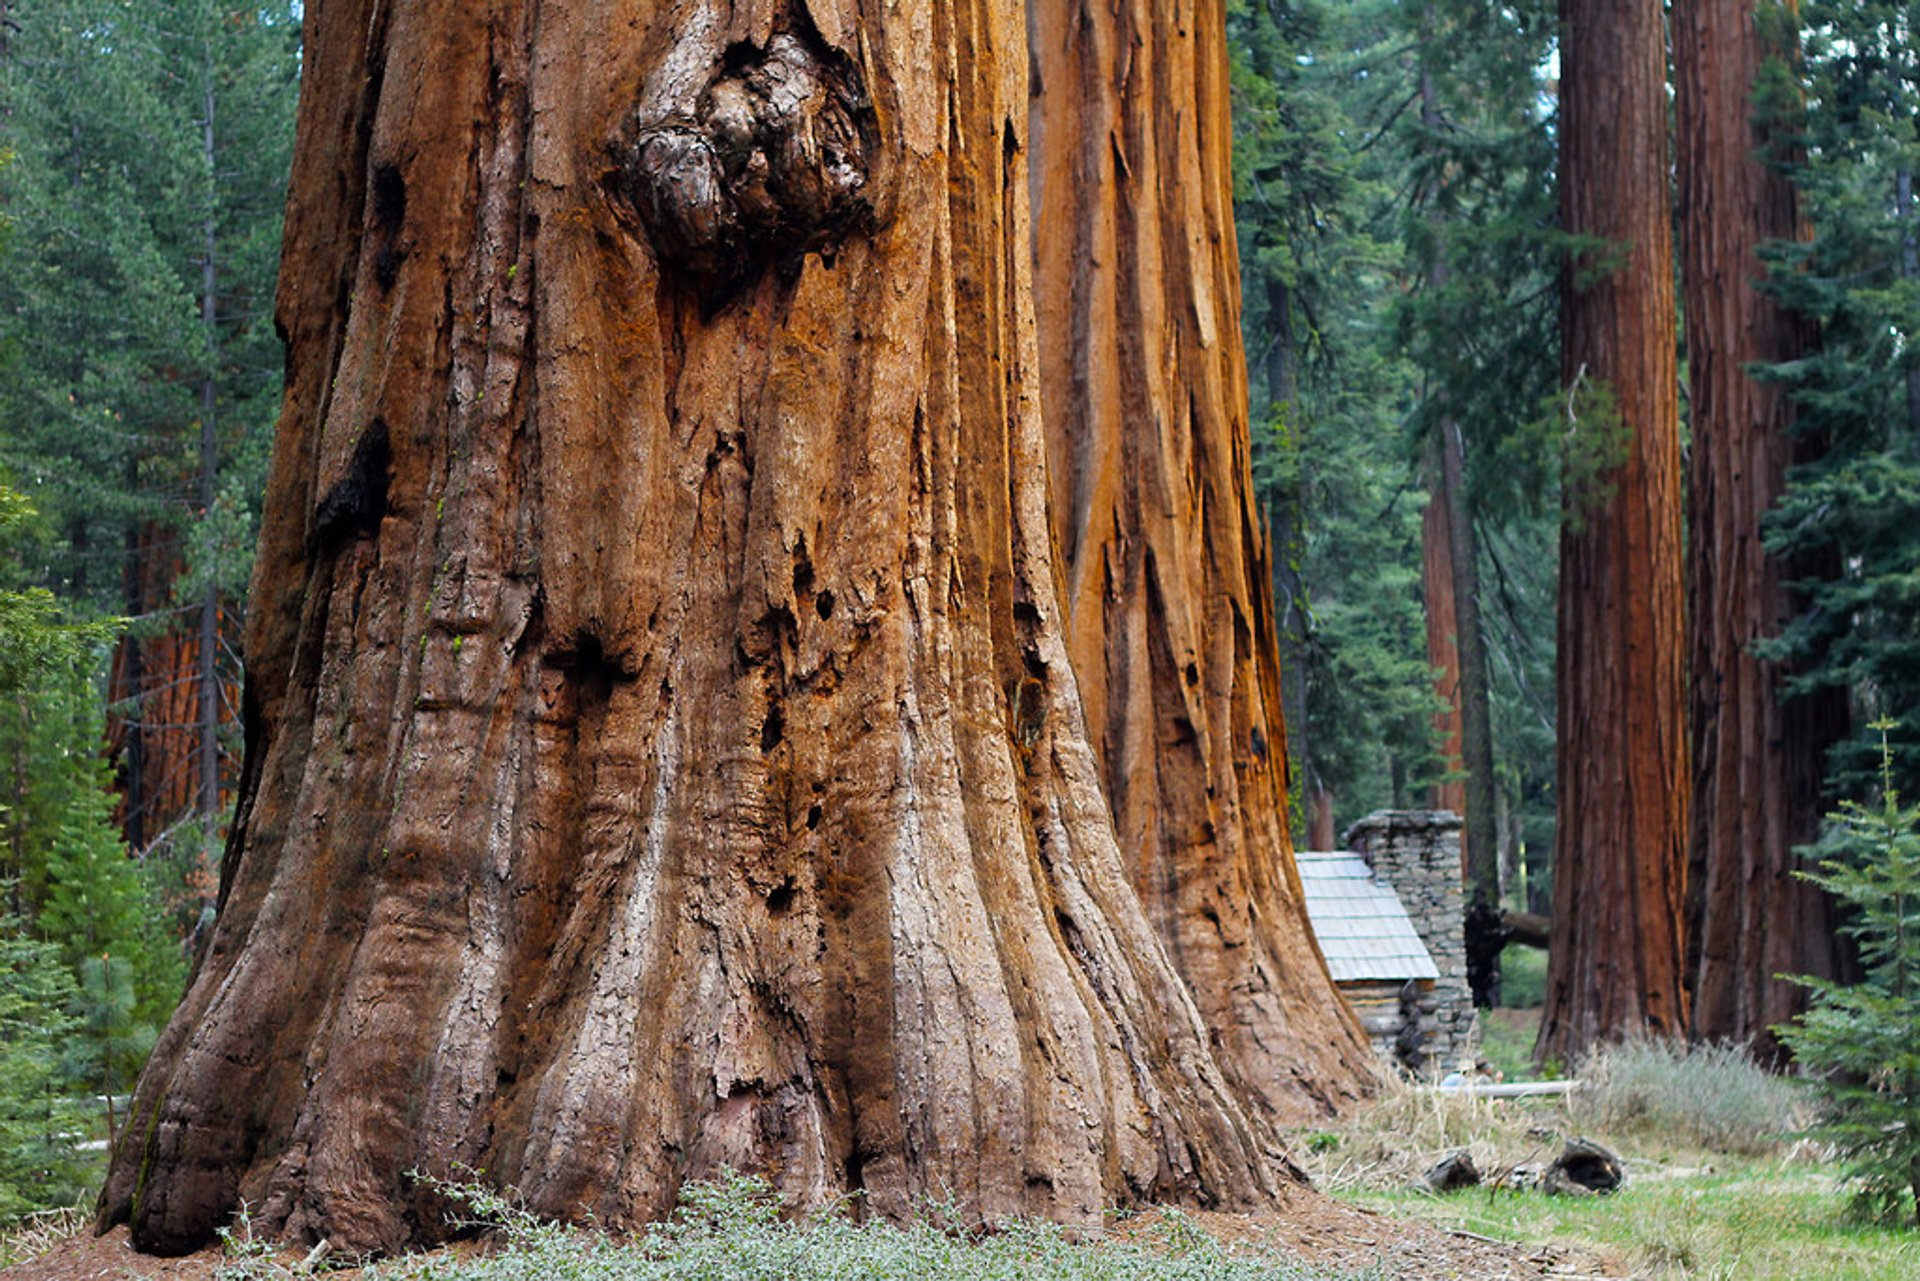 Giant Sequoias of Yosemite National Park in Yosemite - Best Season 2020